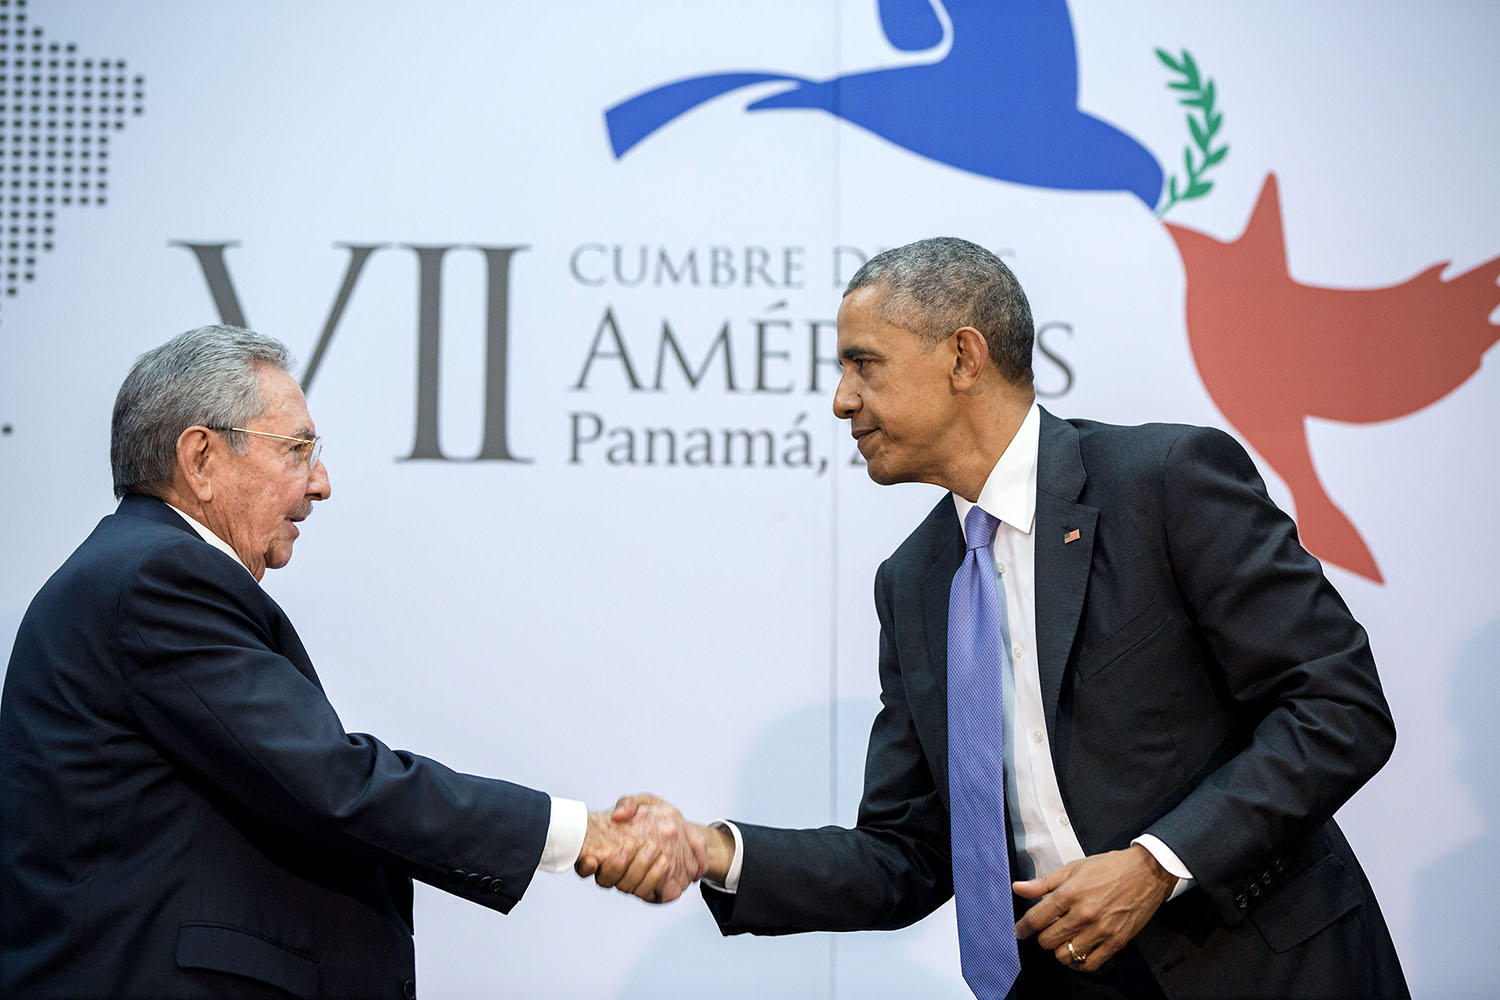 Former US president Barack Obama meets former Cuban president Raul Castro to discuss relations between the two countries. After meeting with Cuba in 2016, the countries are still trying to define their new relationship.